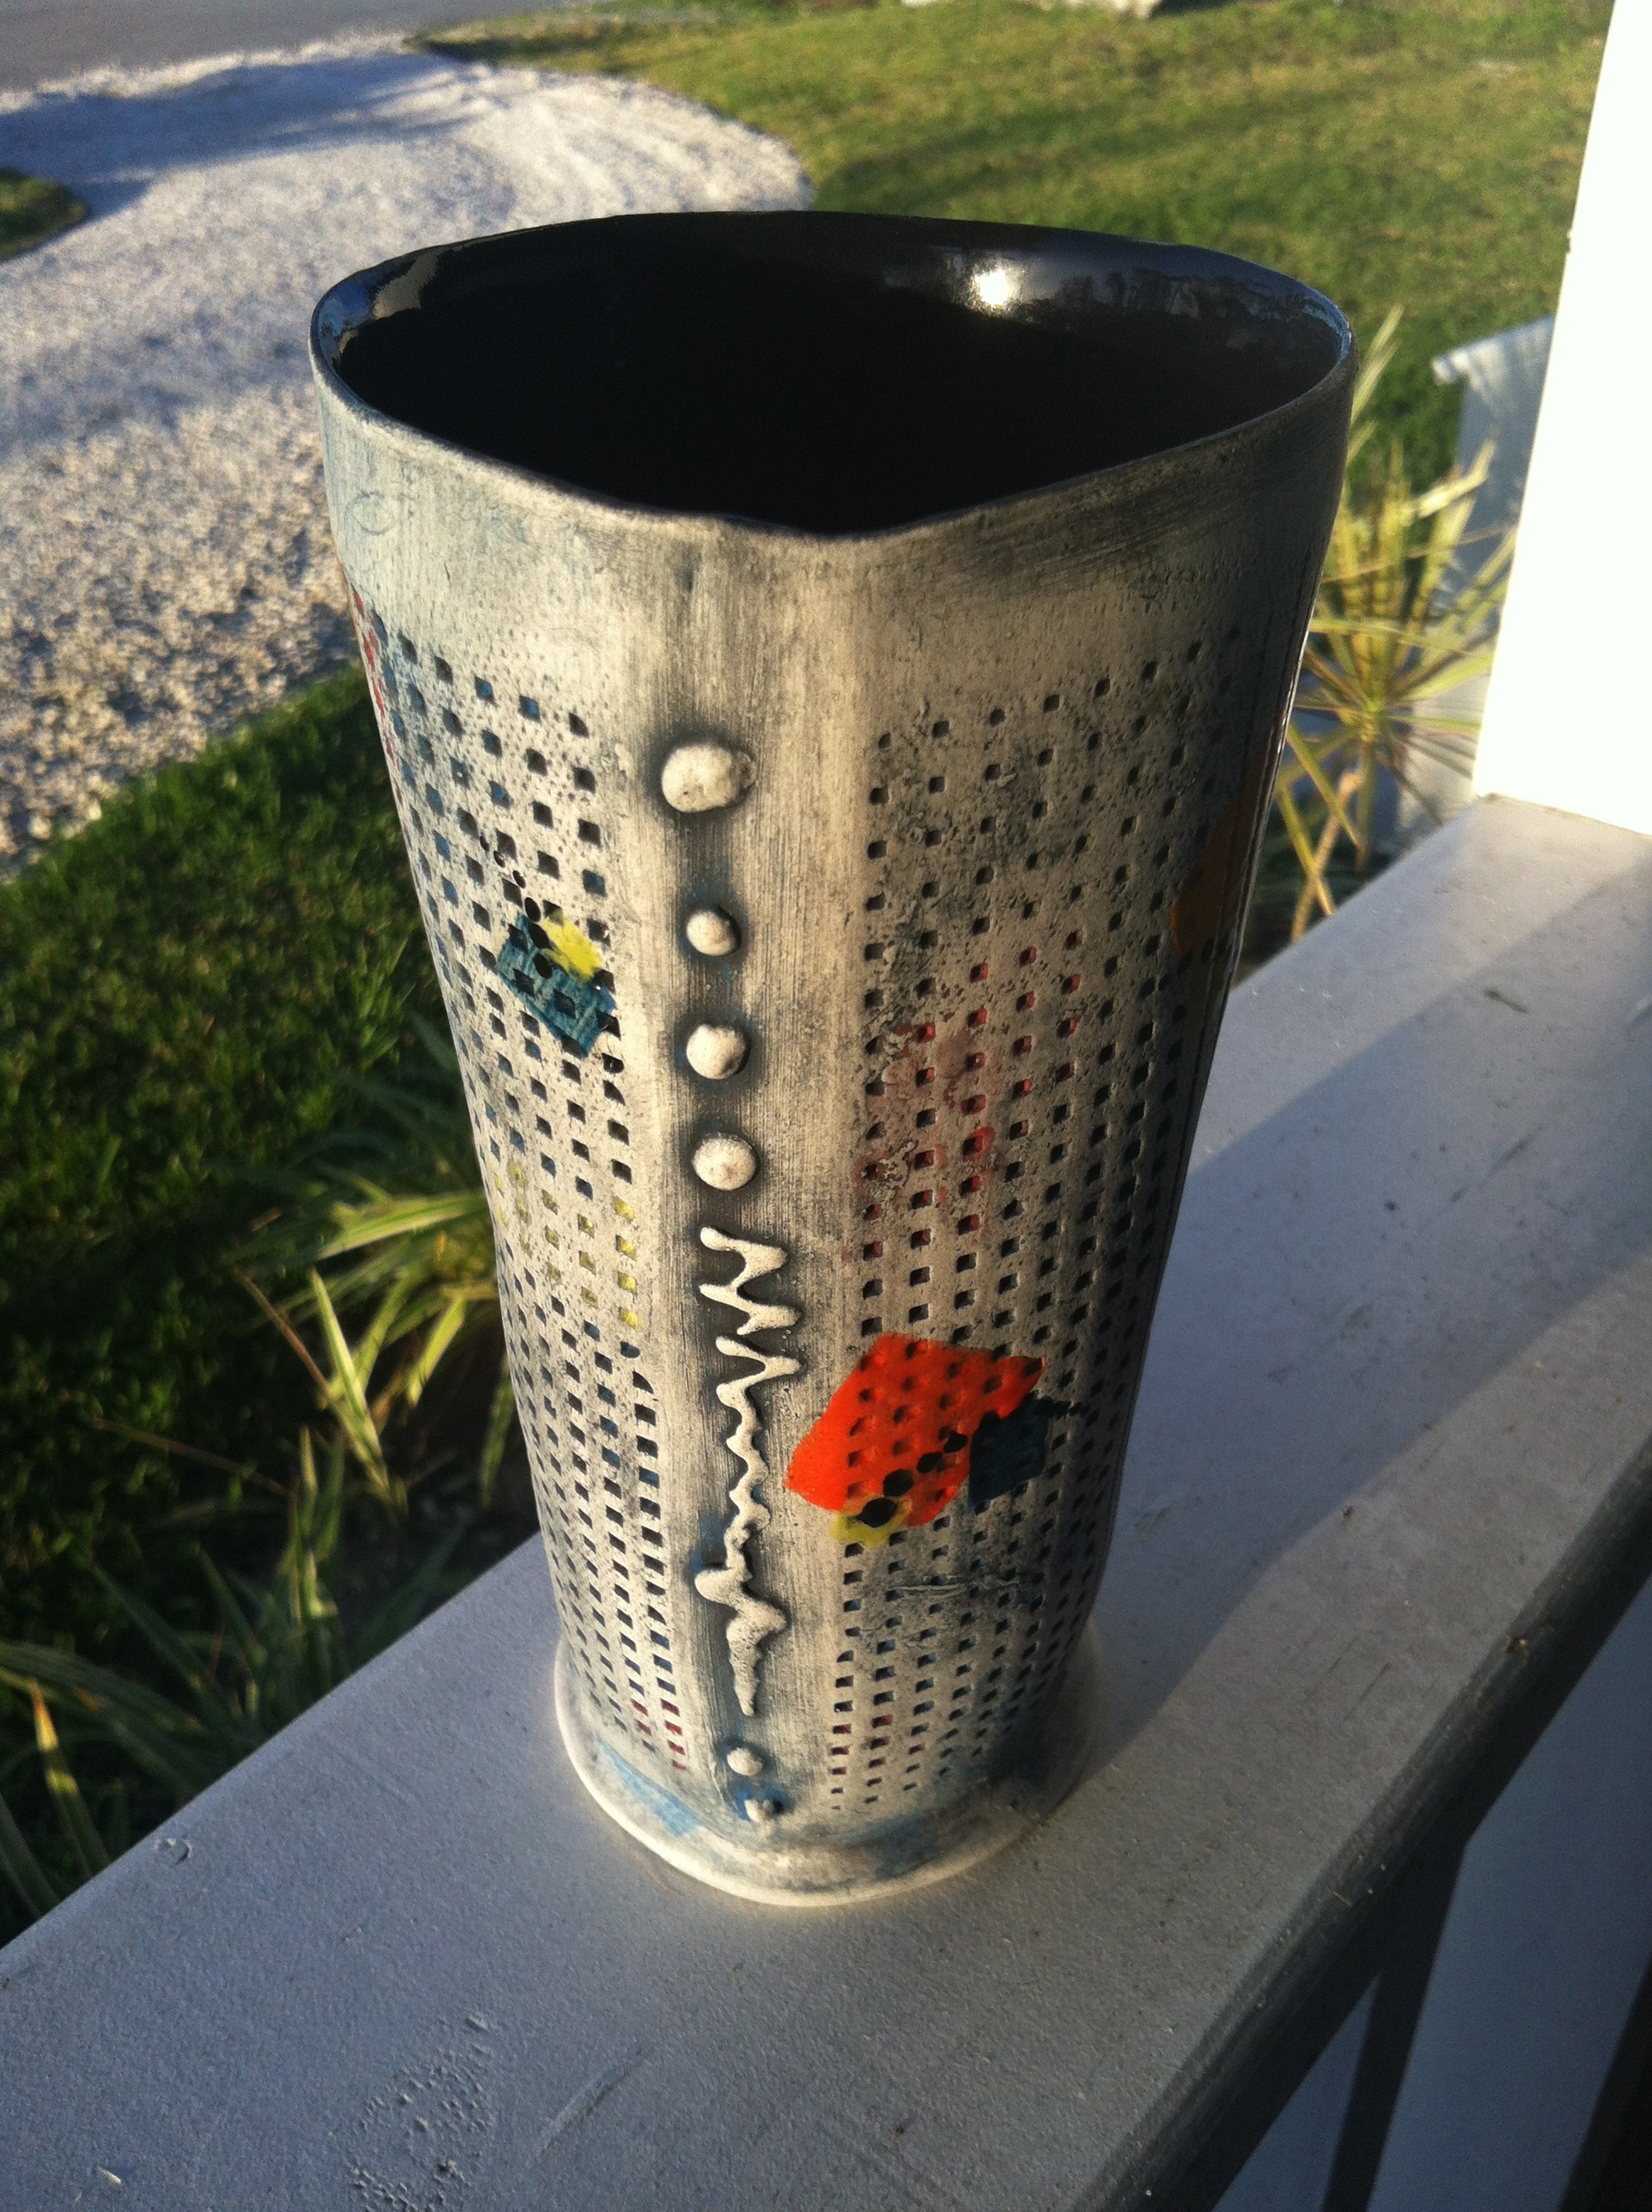 """Completed vase, """"Block Party"""" in all its glory! Matte exterior with glossy splashes of color."""